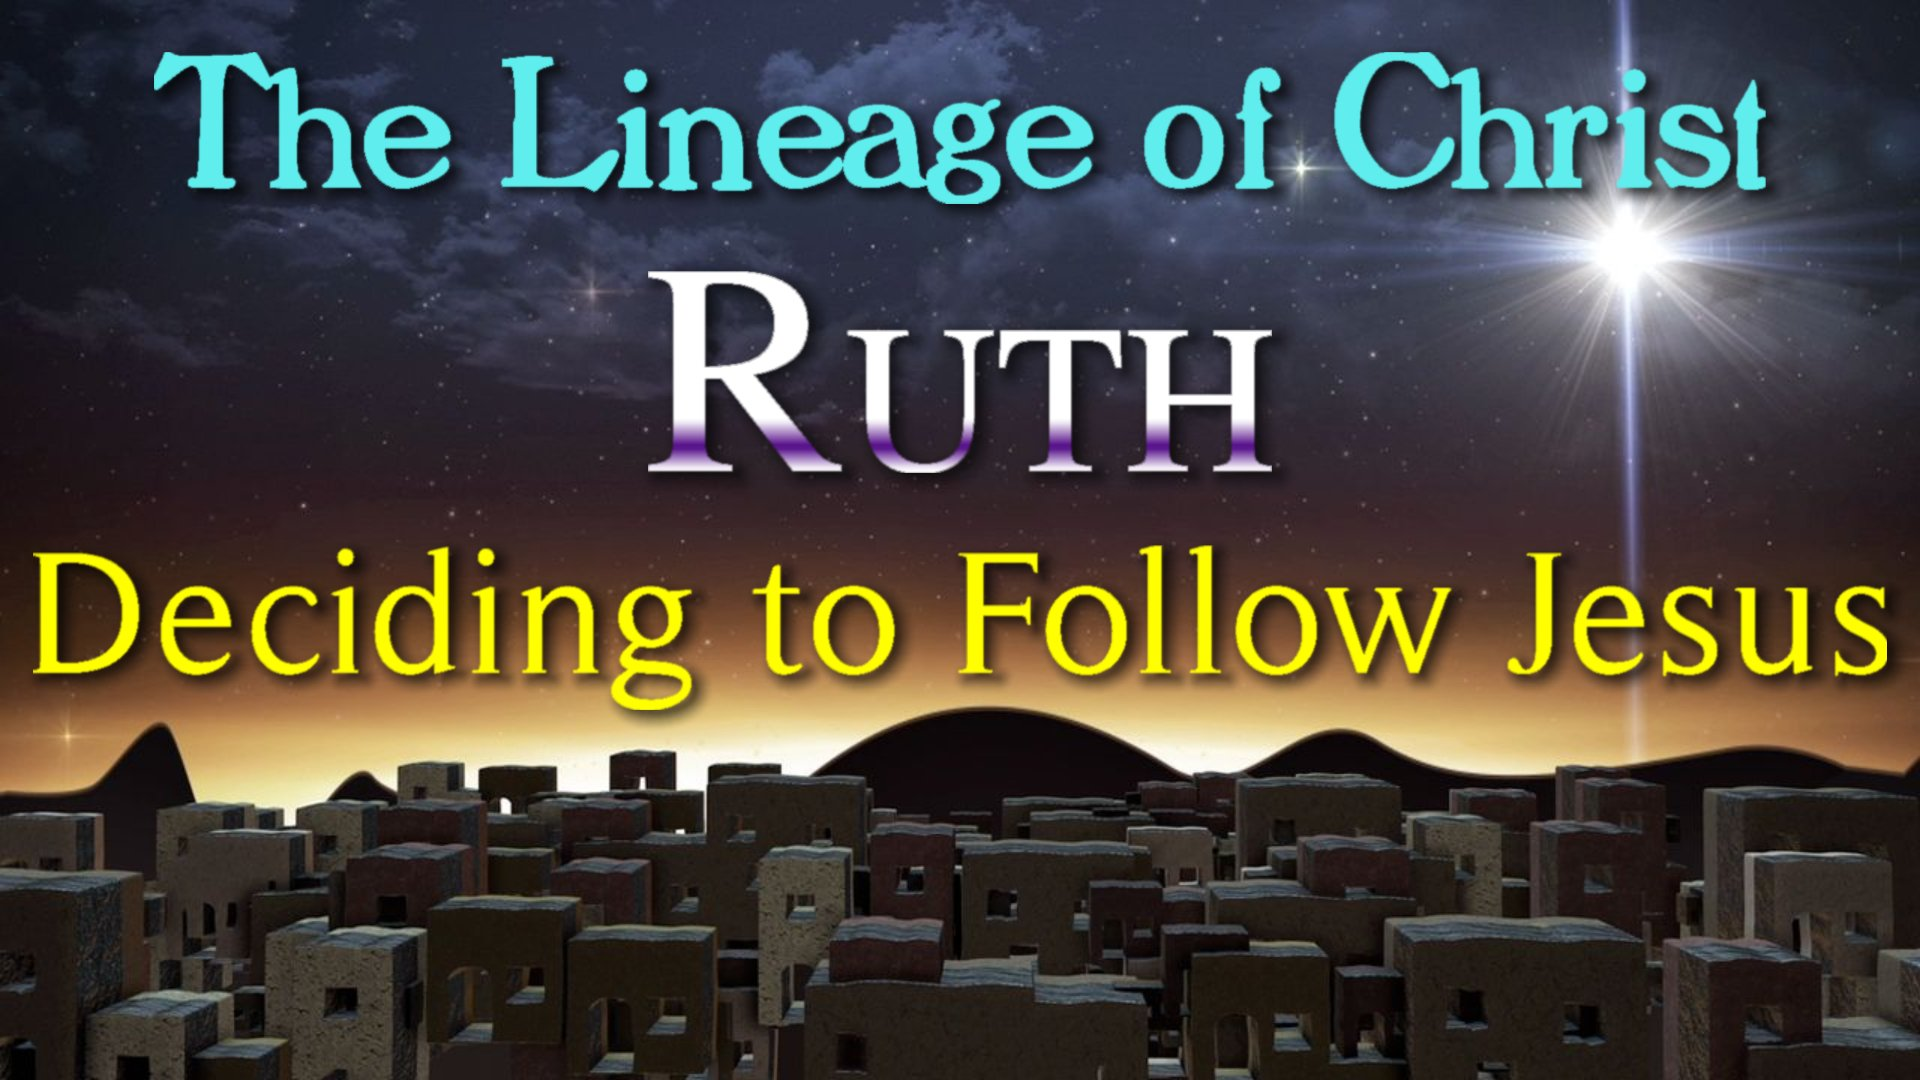 15 Ruth Deciding to Follow the Lord